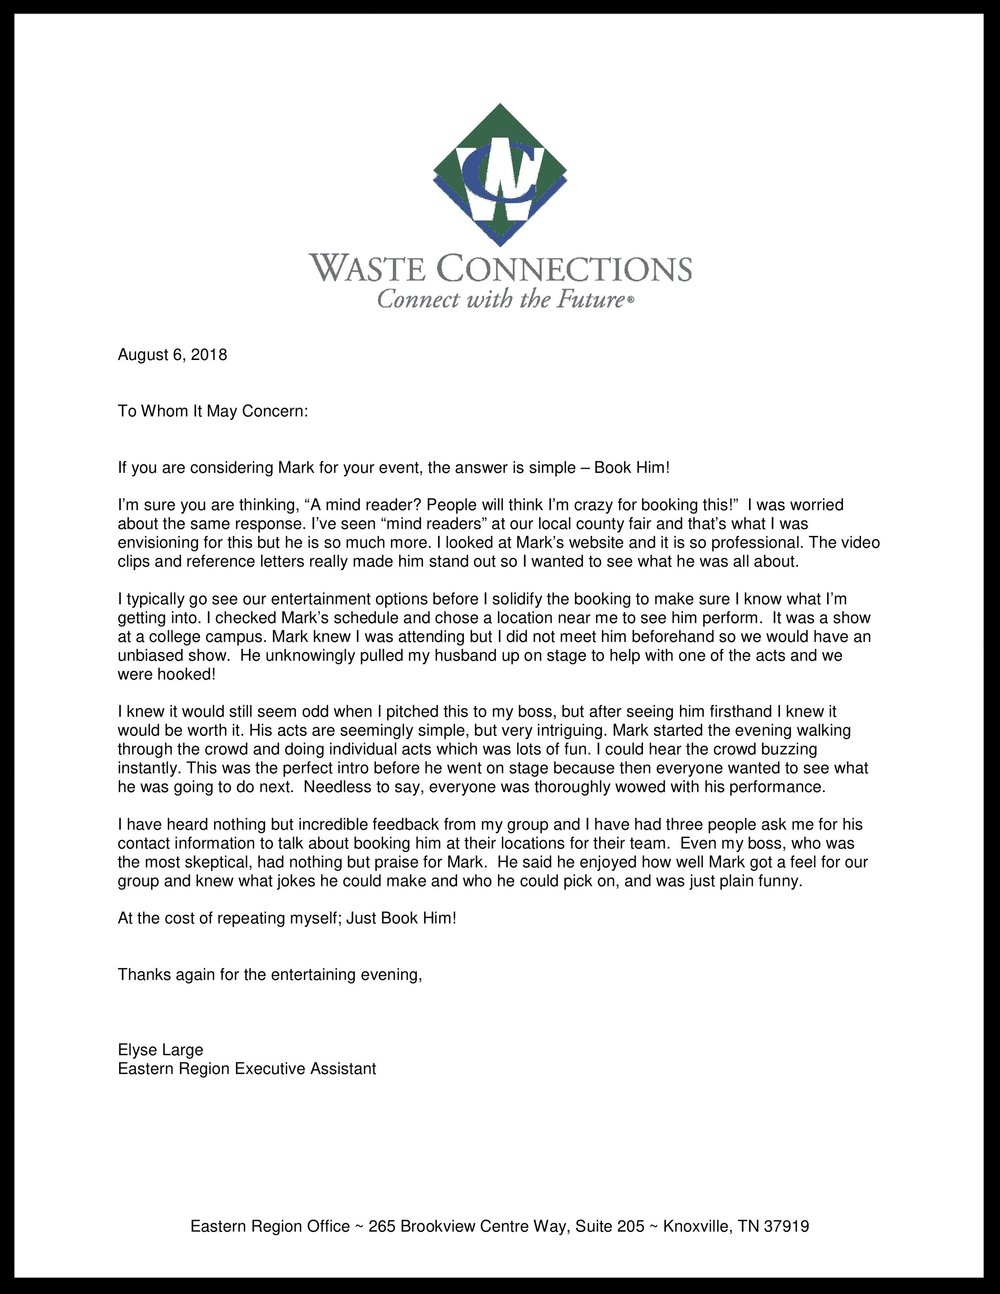 waste-connections-rec-letter.jpg